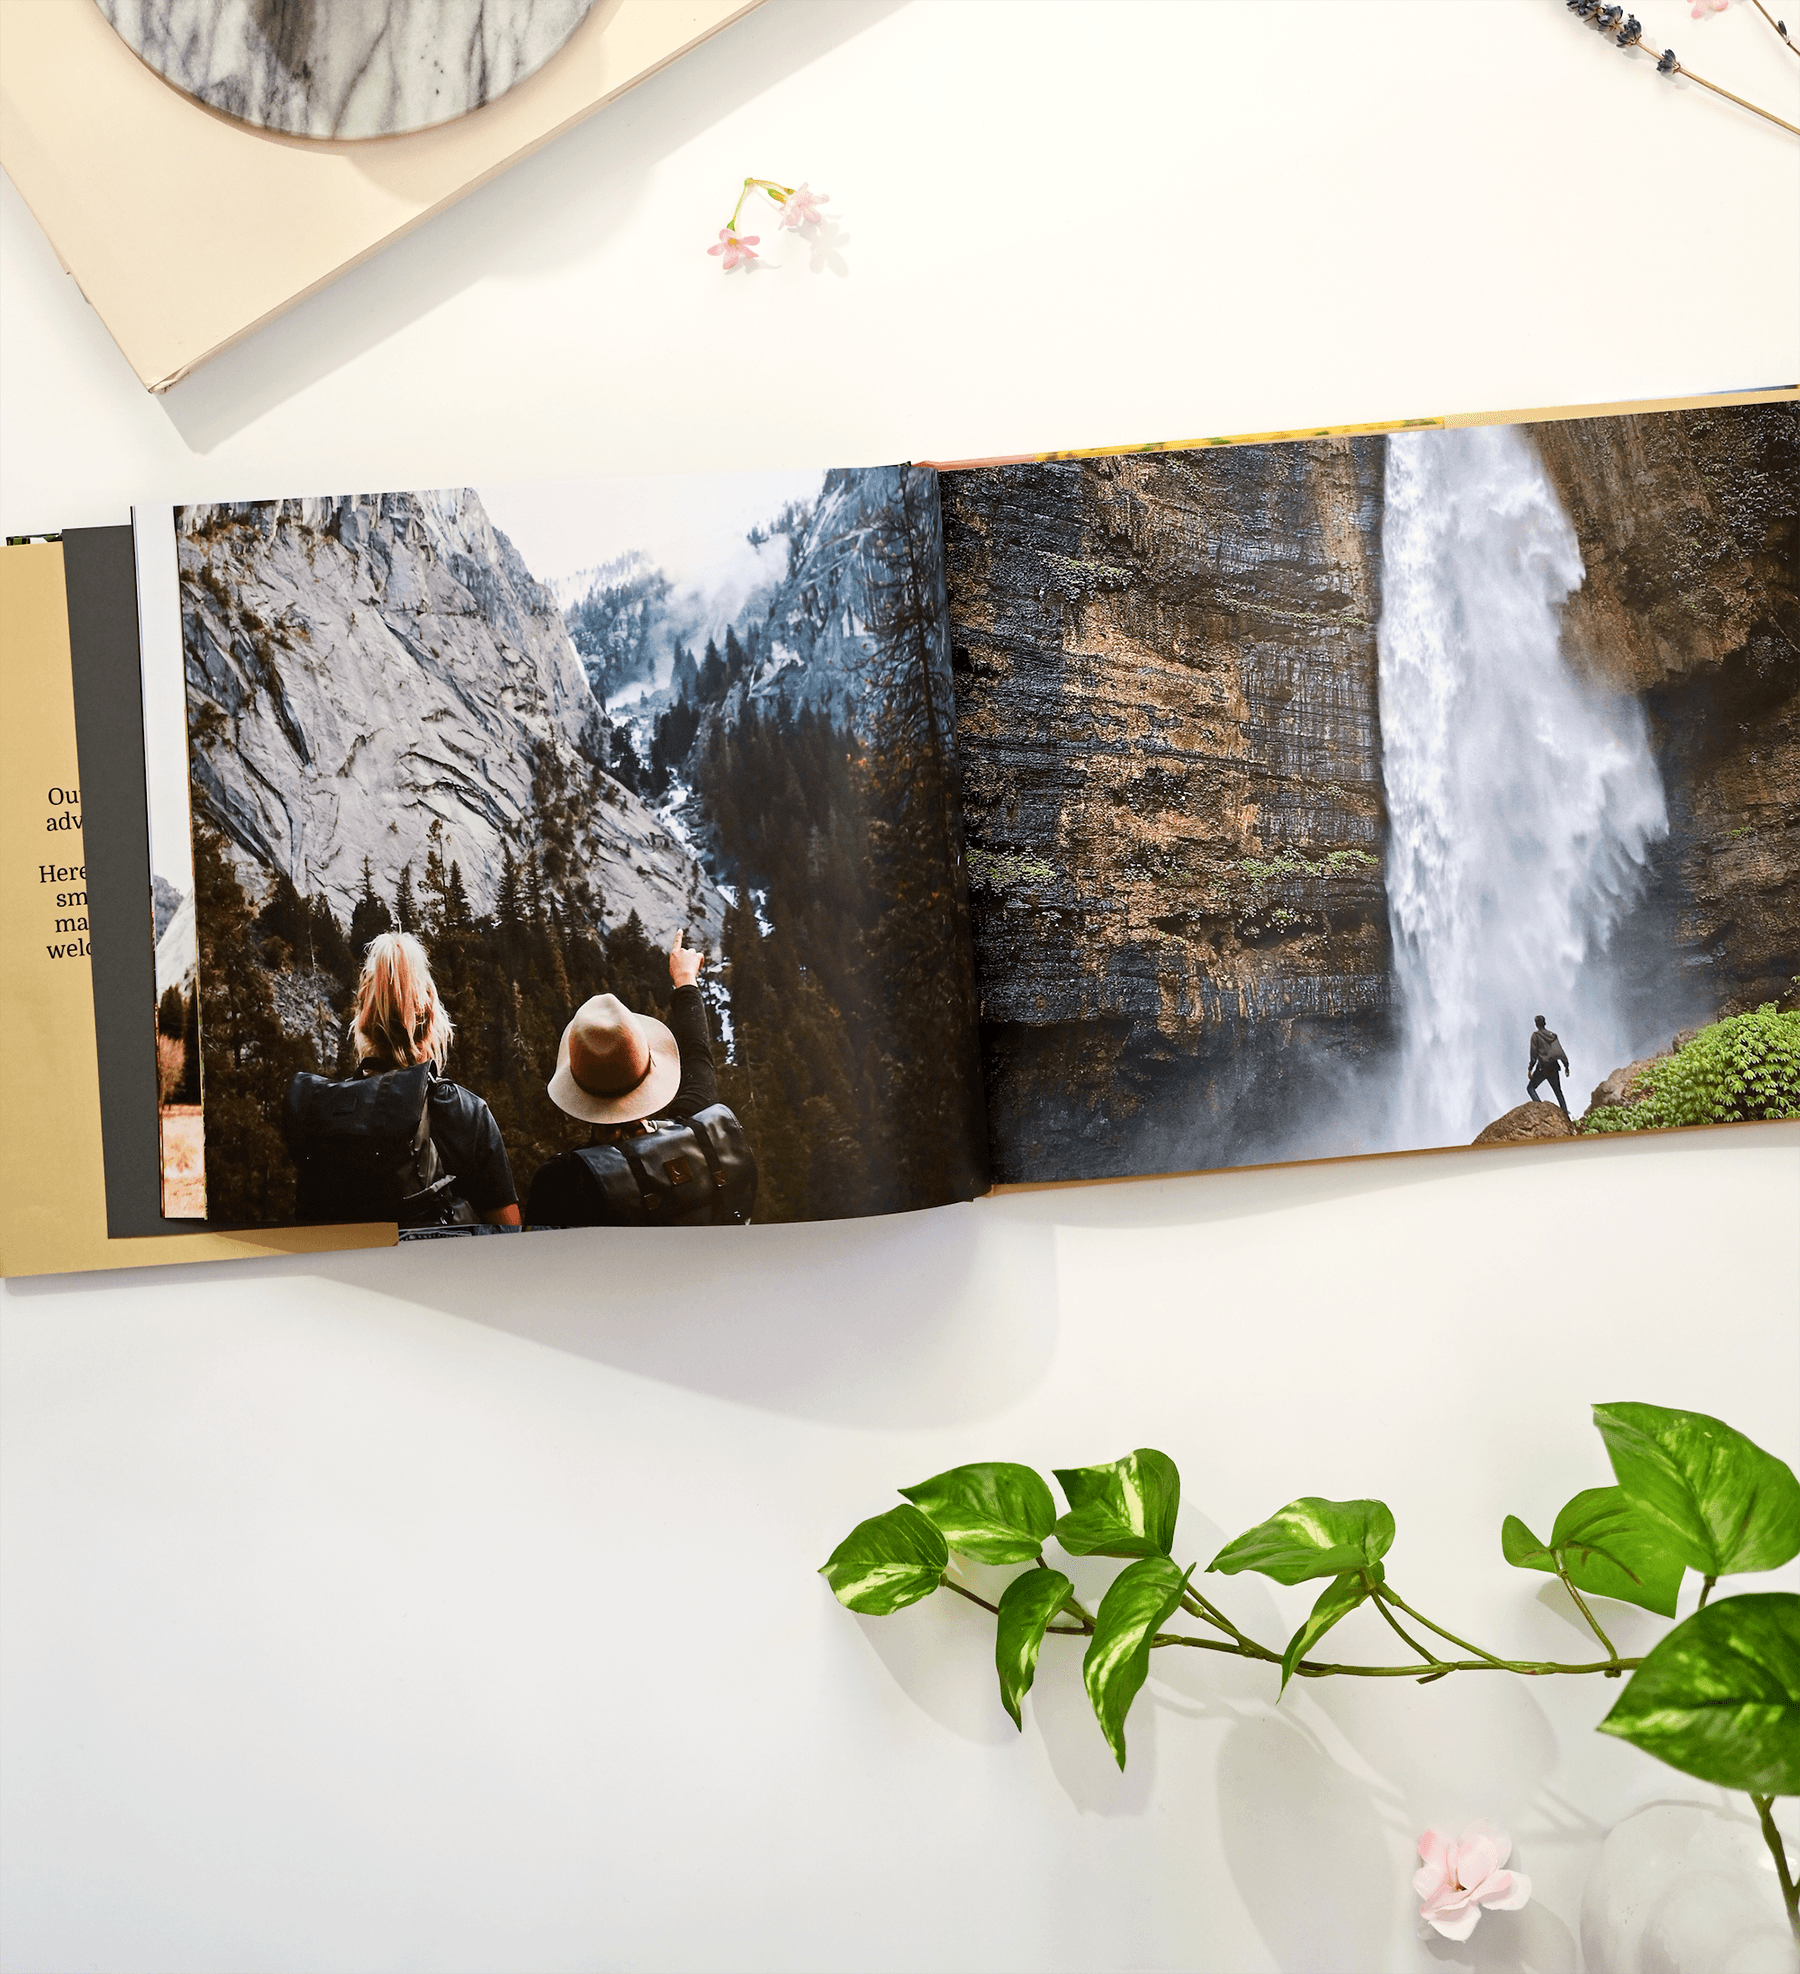 Gift a personal photo book for Valentine's Day this year